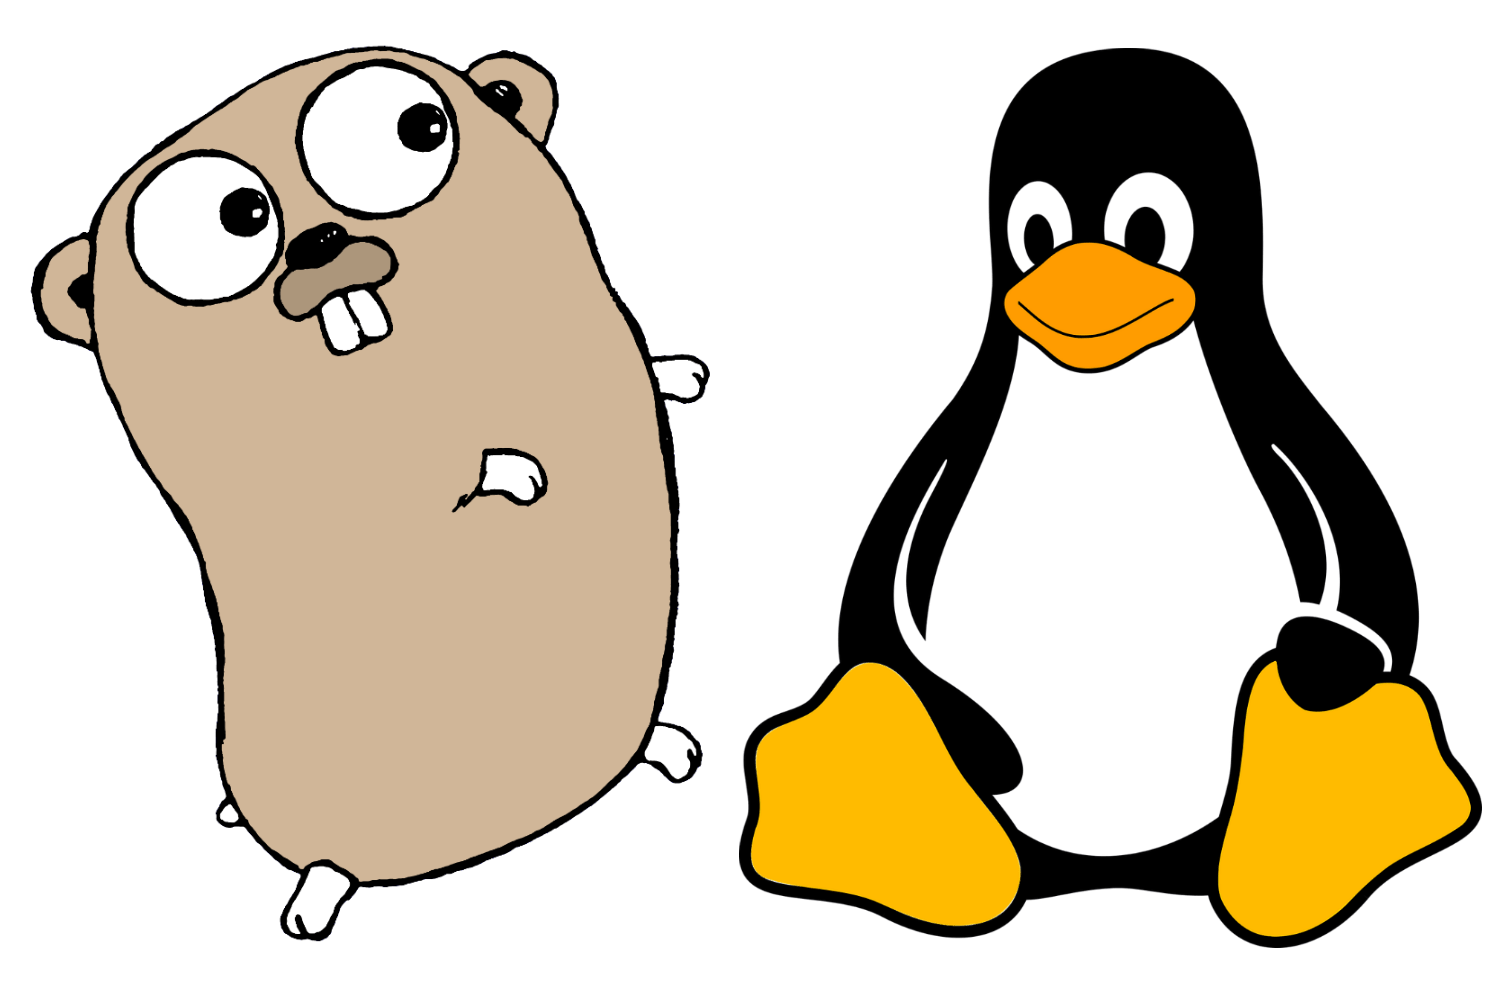 emperor penguin diagram ezgo txt wiring gas using go as a scripting language in linux